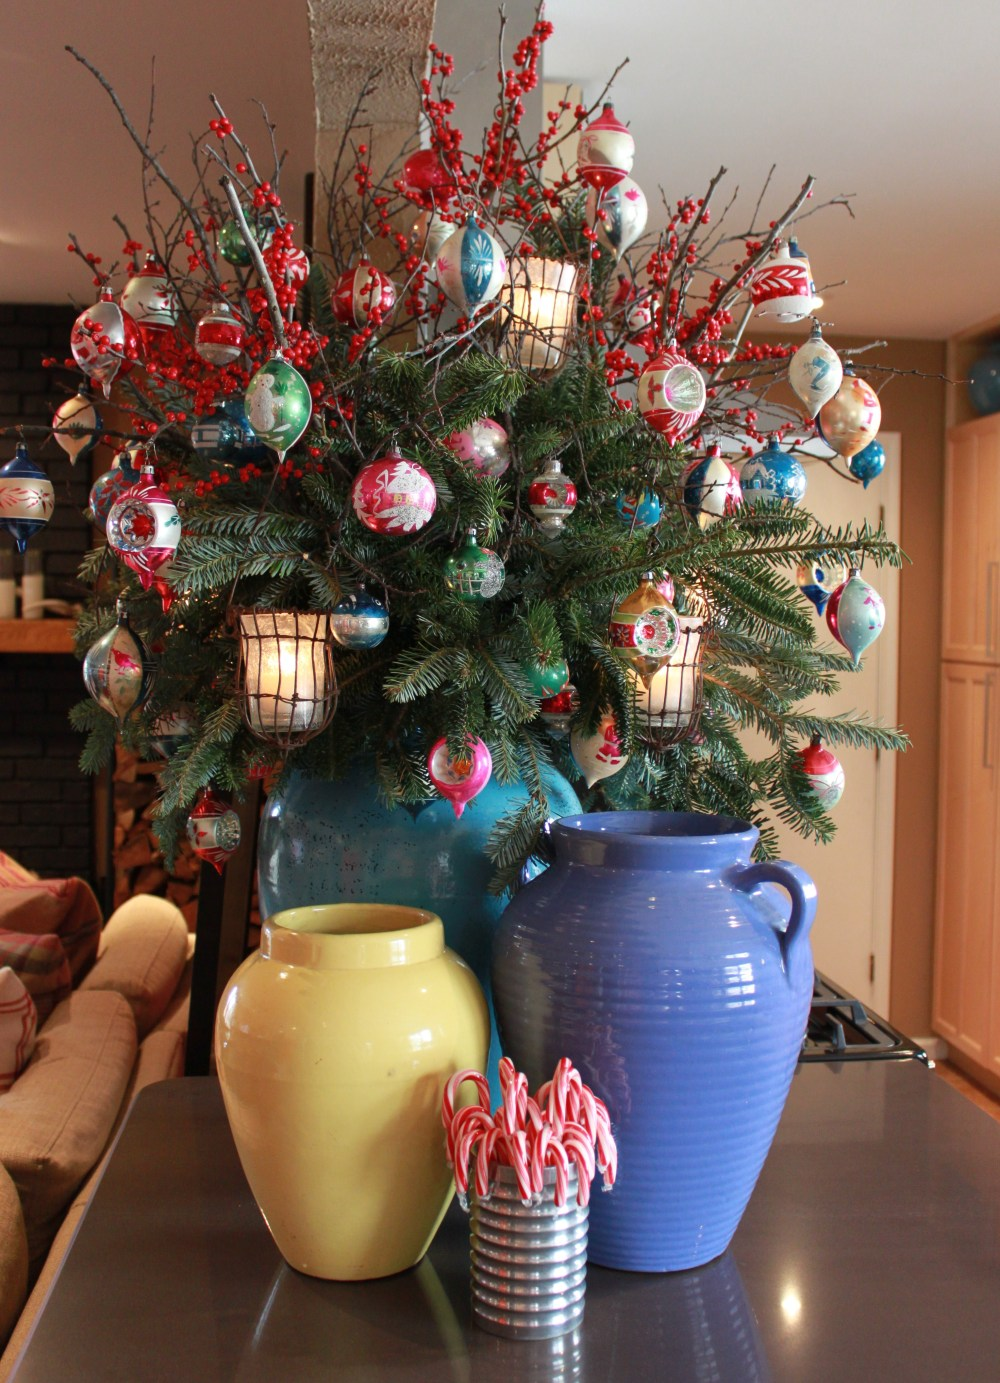 Oil Jar full of Branches, Vintage Ornaments, and Votives